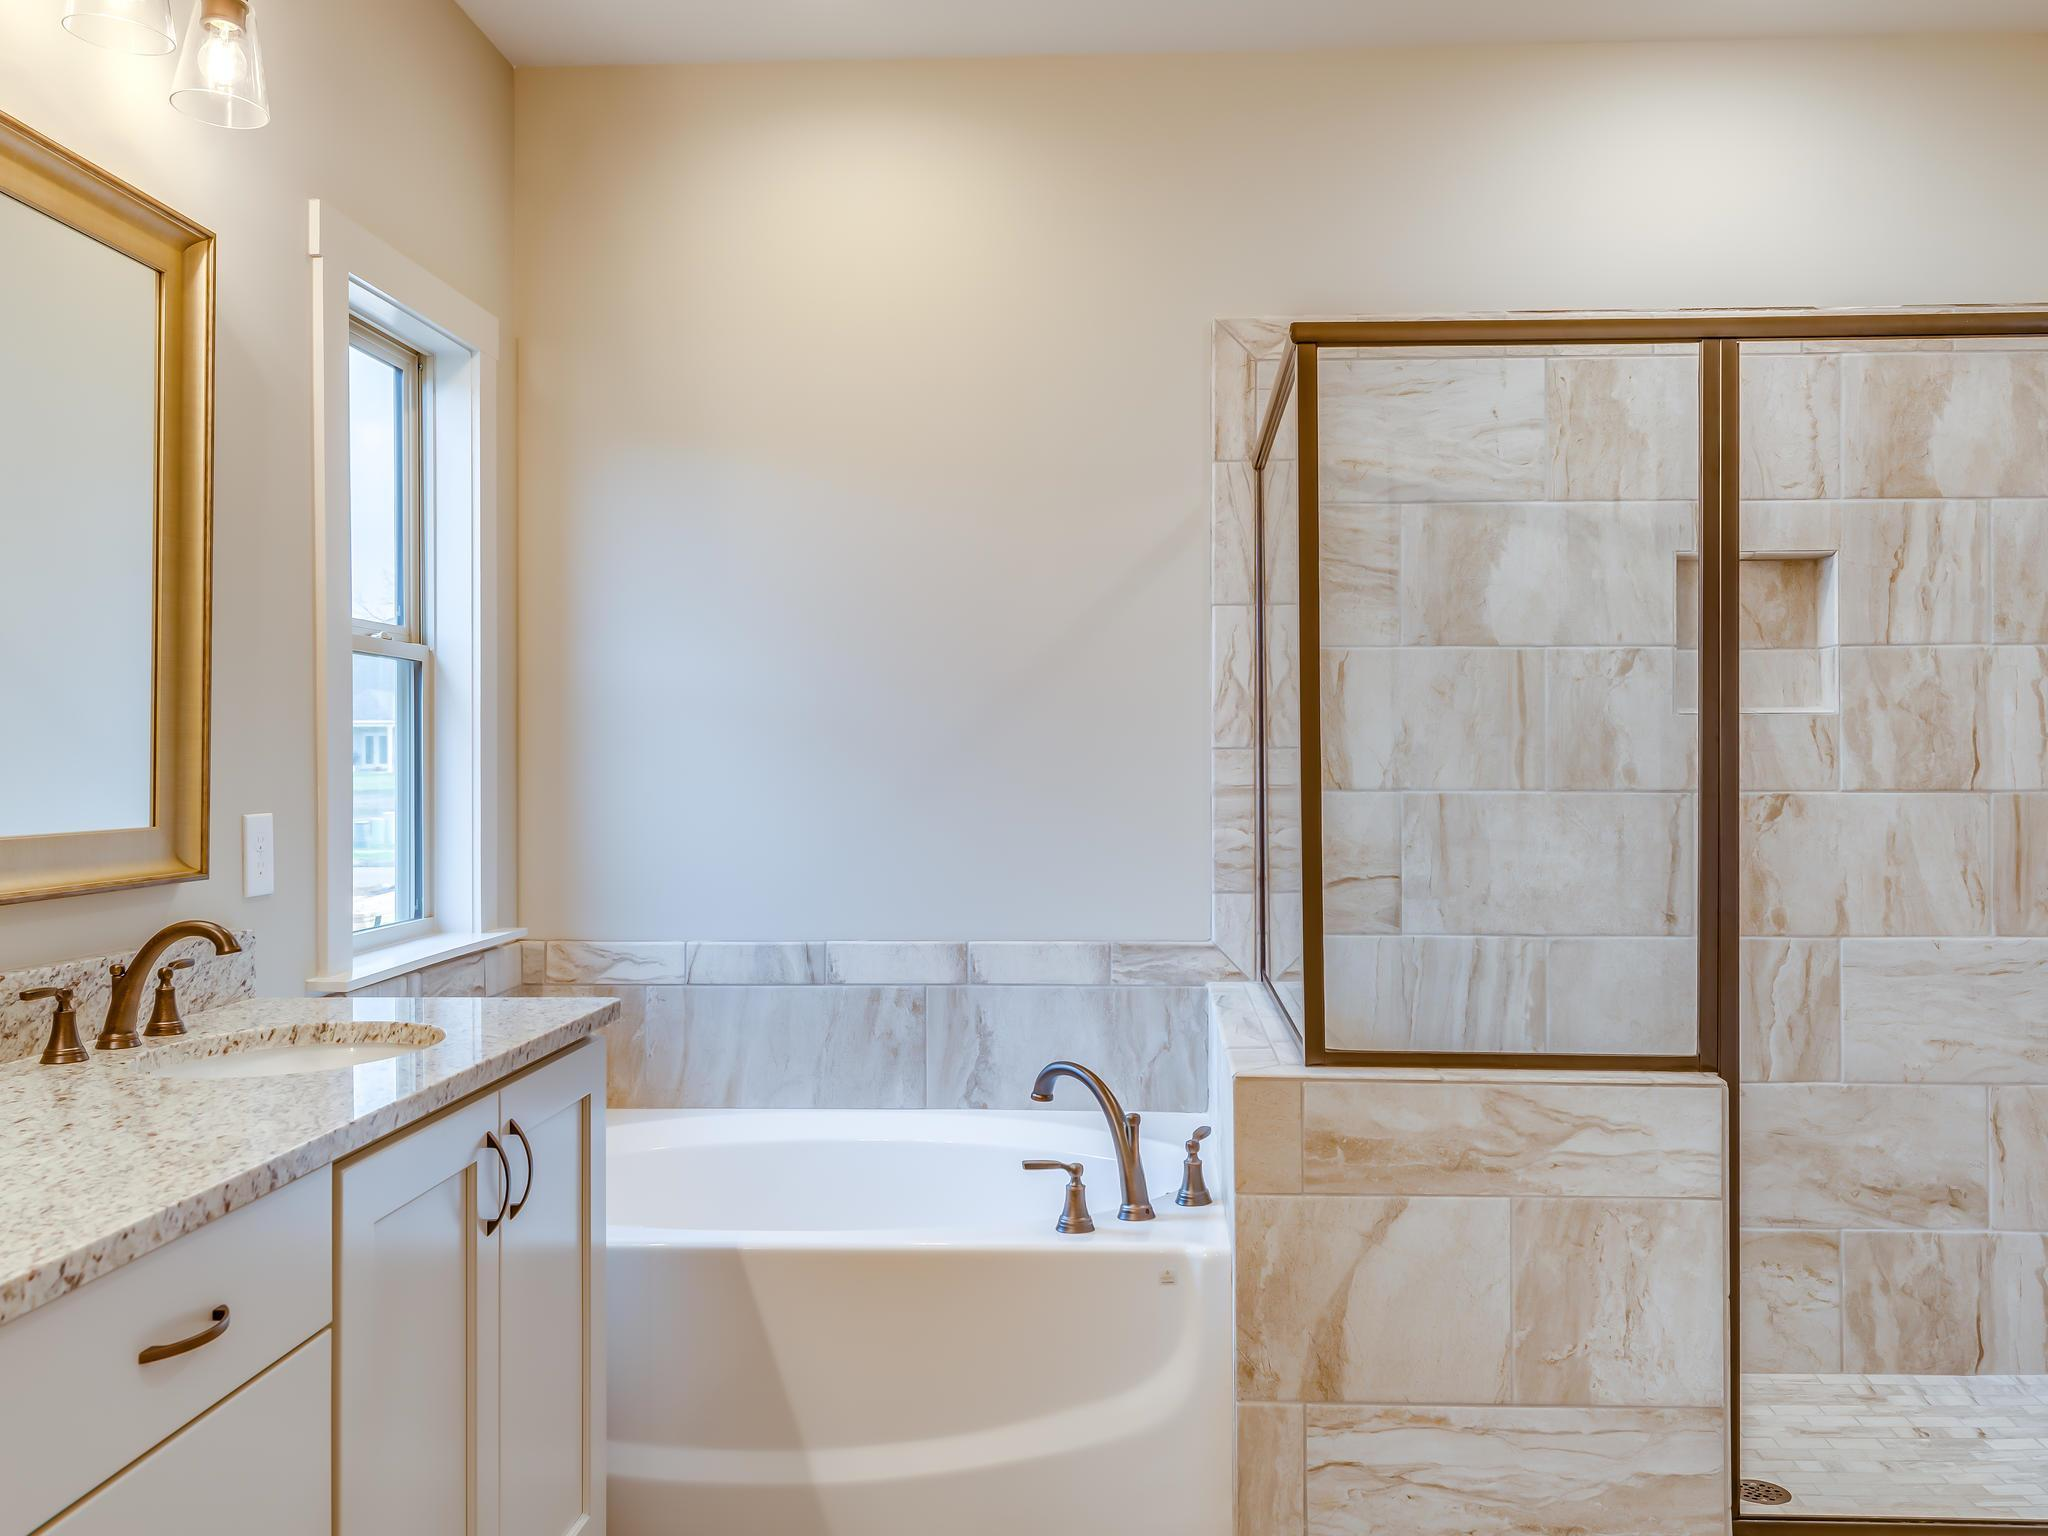 Bathroom featured in the Trenton New Park By Lowder New Homes in Montgomery, AL